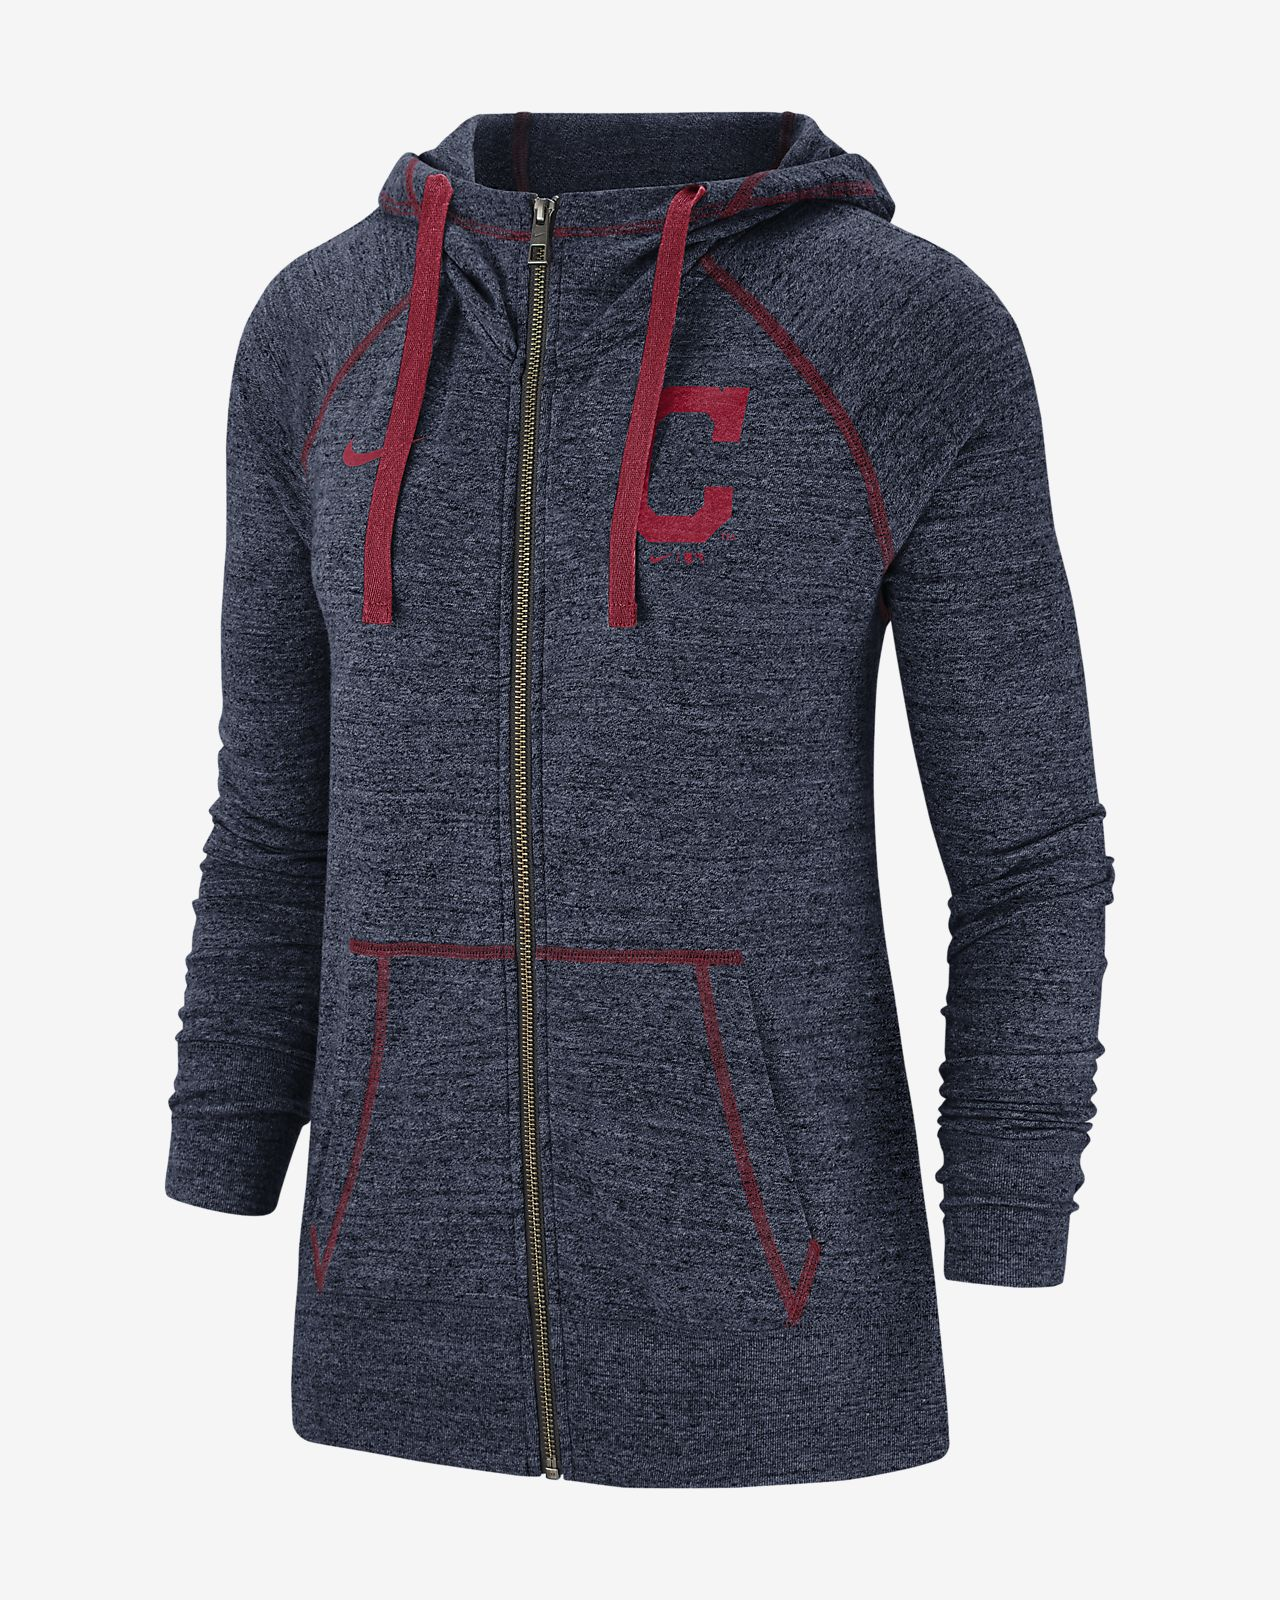 Nike Gym Vintage (MLB Indians) Women's Full-Zip Hoodie